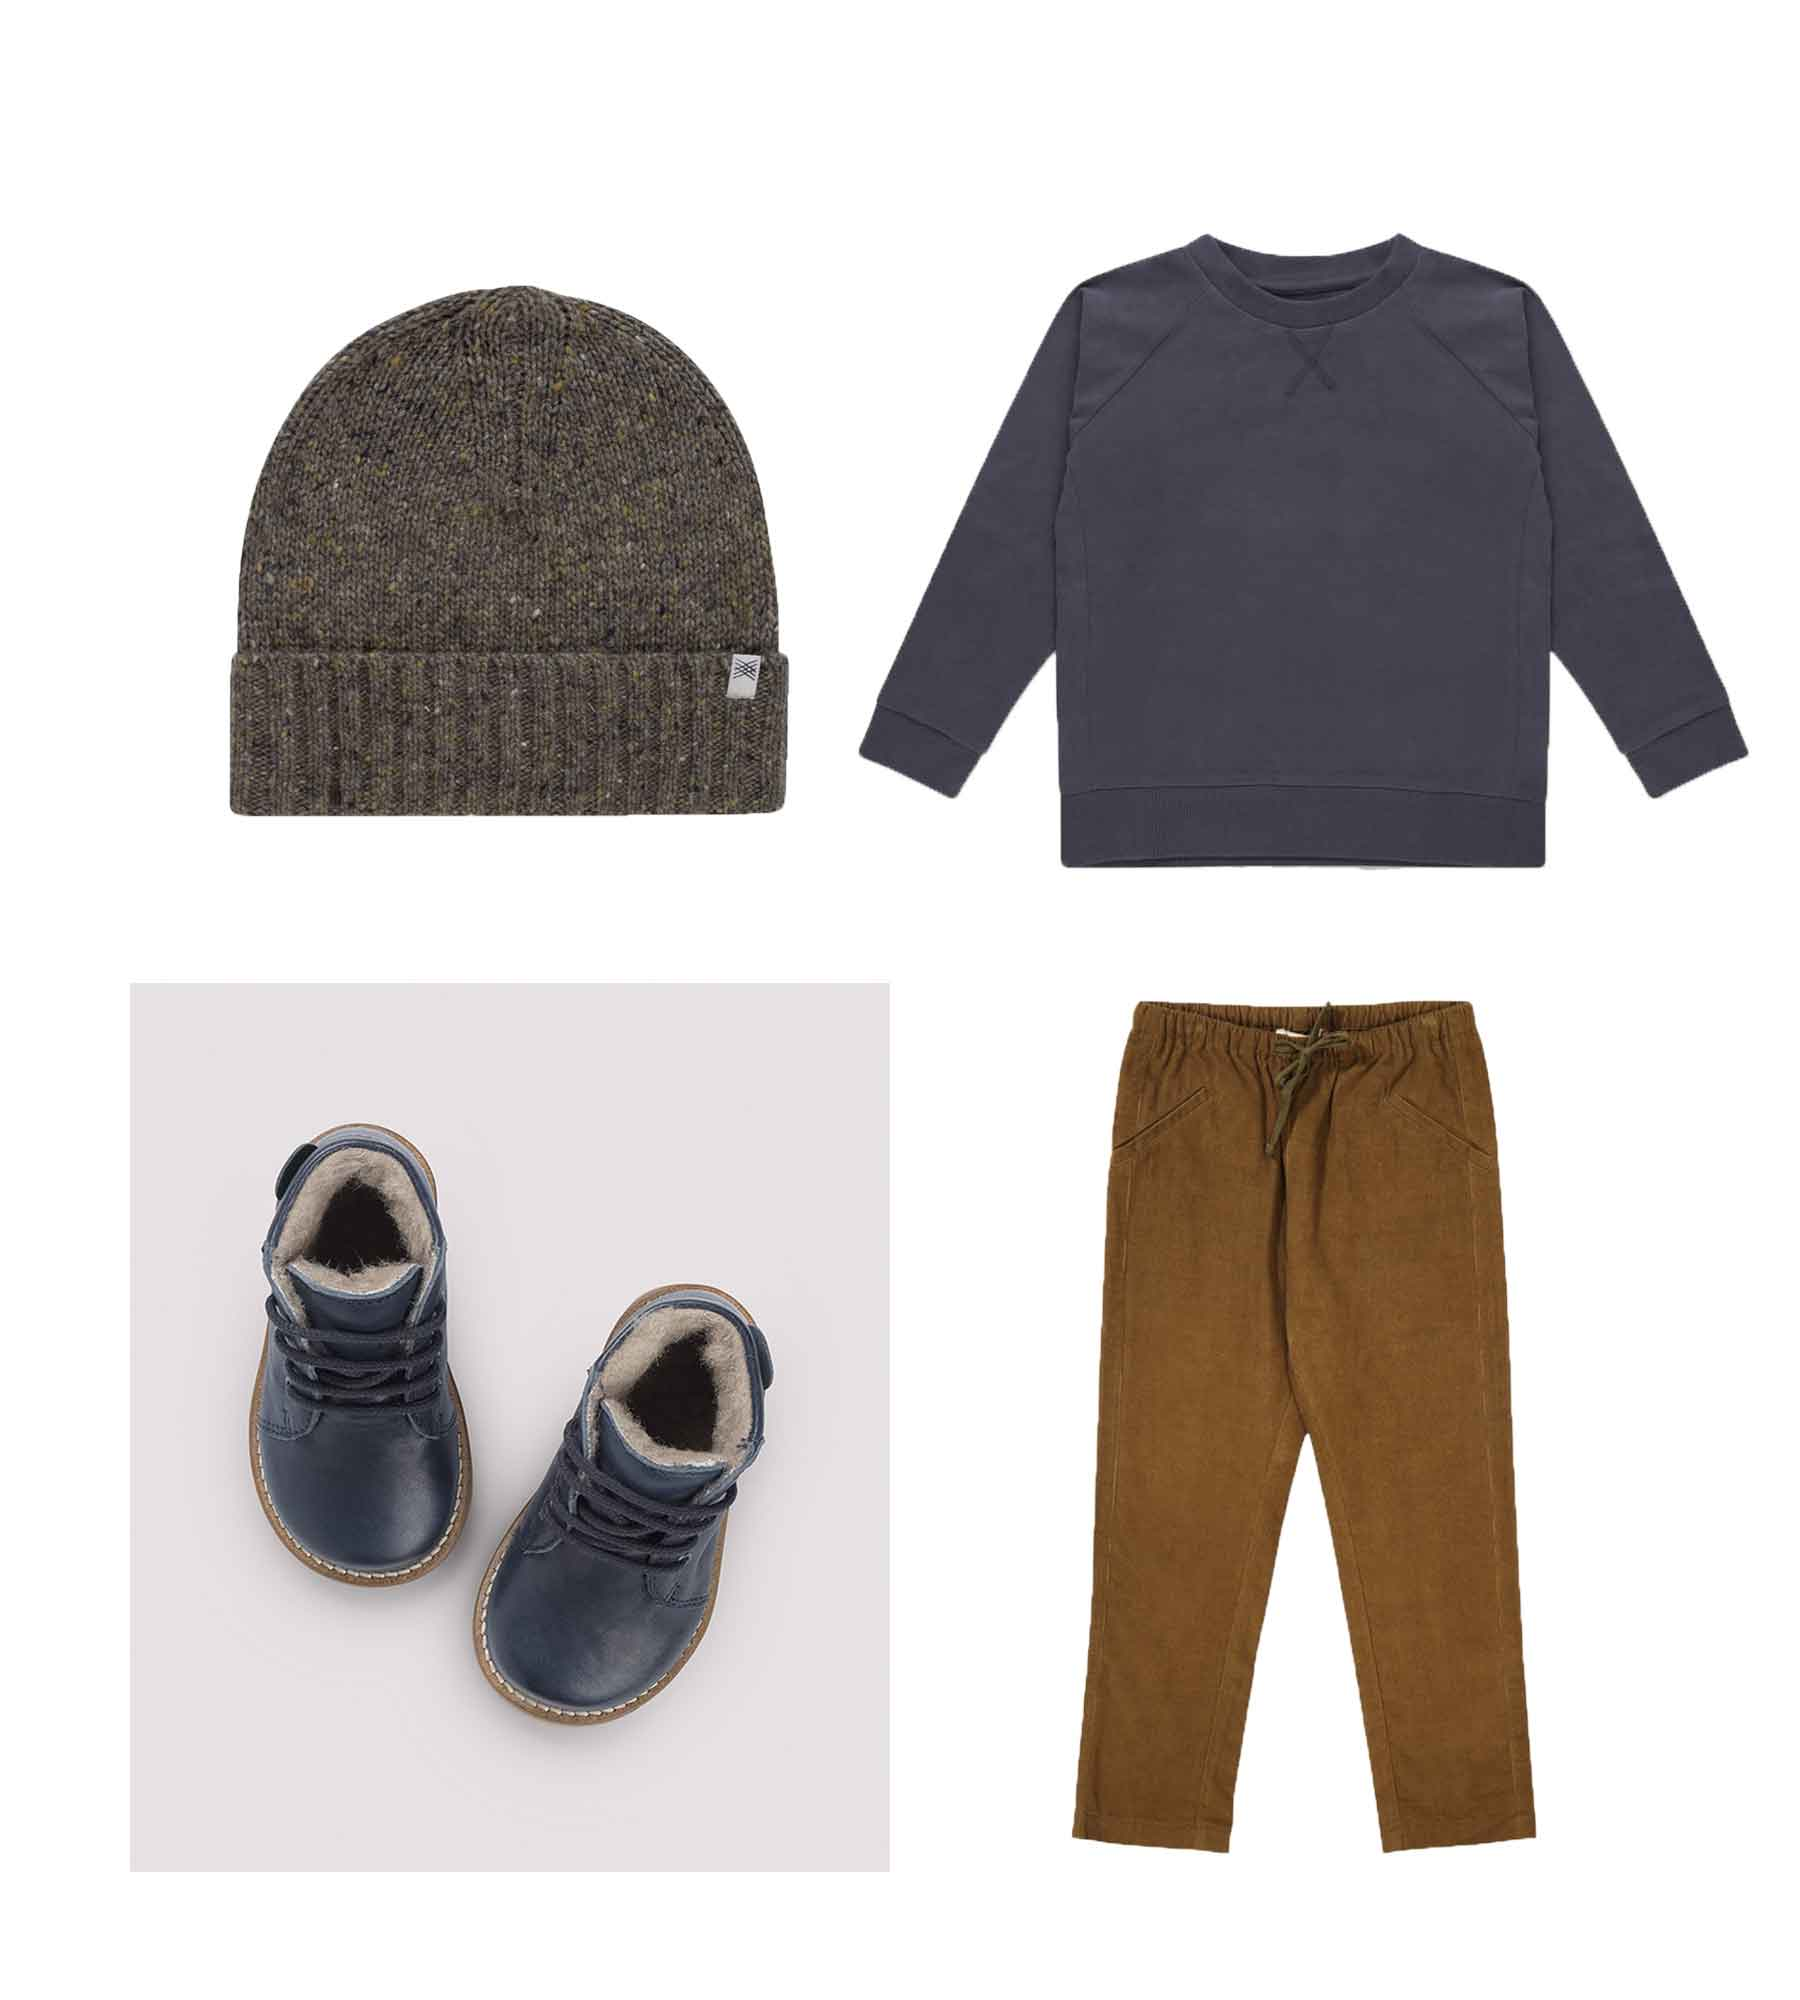 Knit hat/ REPOSE AMS  Sweat tee/ REPOSE AMS  Shoes/ PETIT NORD  Trousers/ CARAMEL